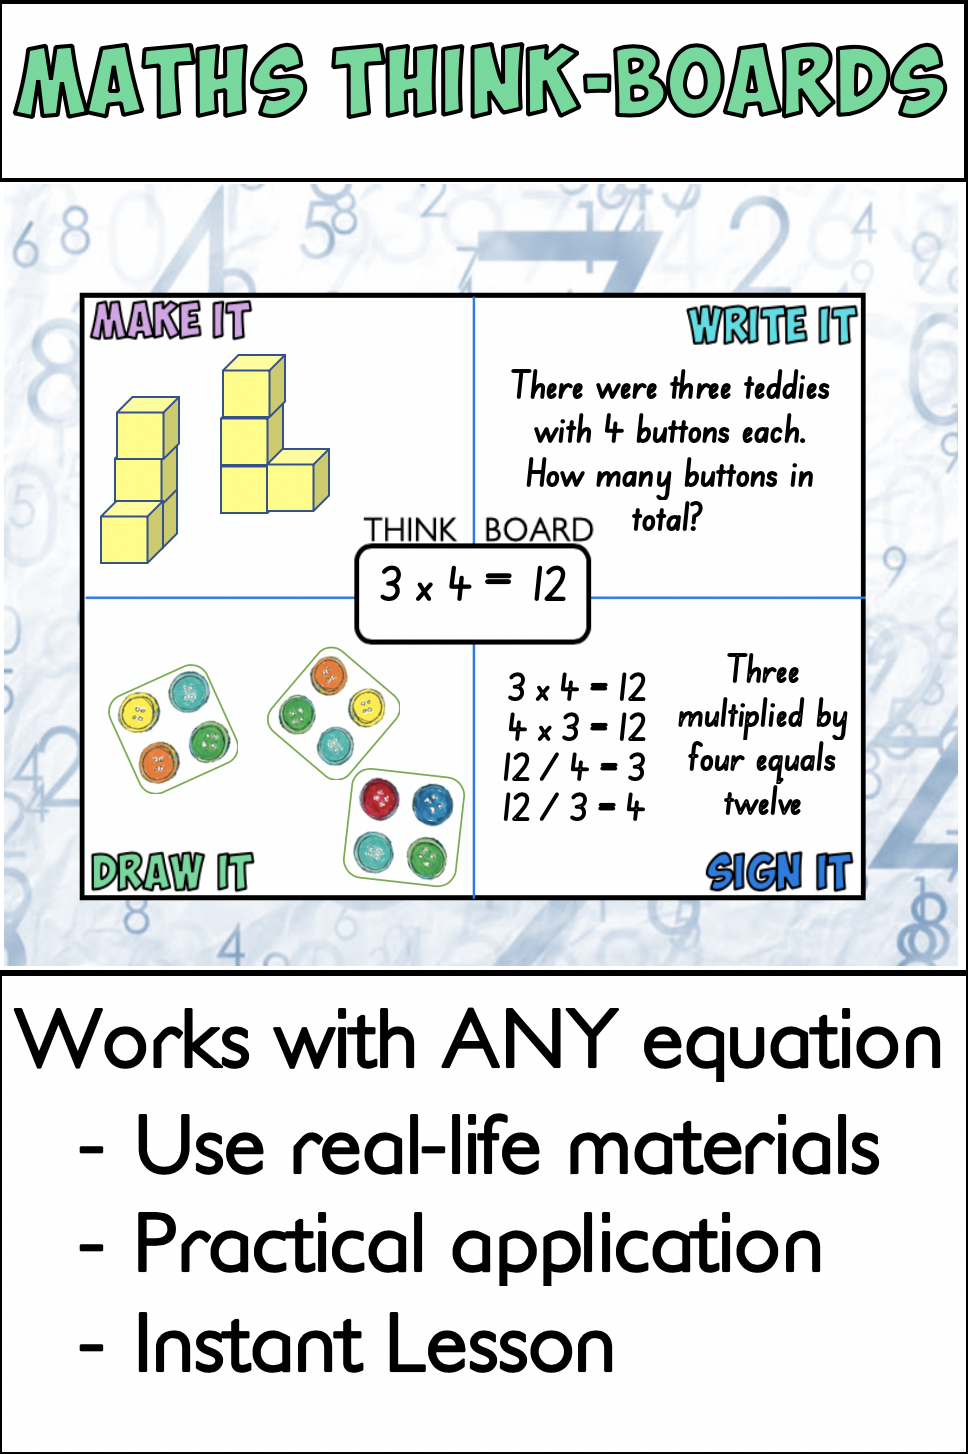 Math Thinkboards Elementary Special Education Activities Math Math Lessons [ 1454 x 968 Pixel ]